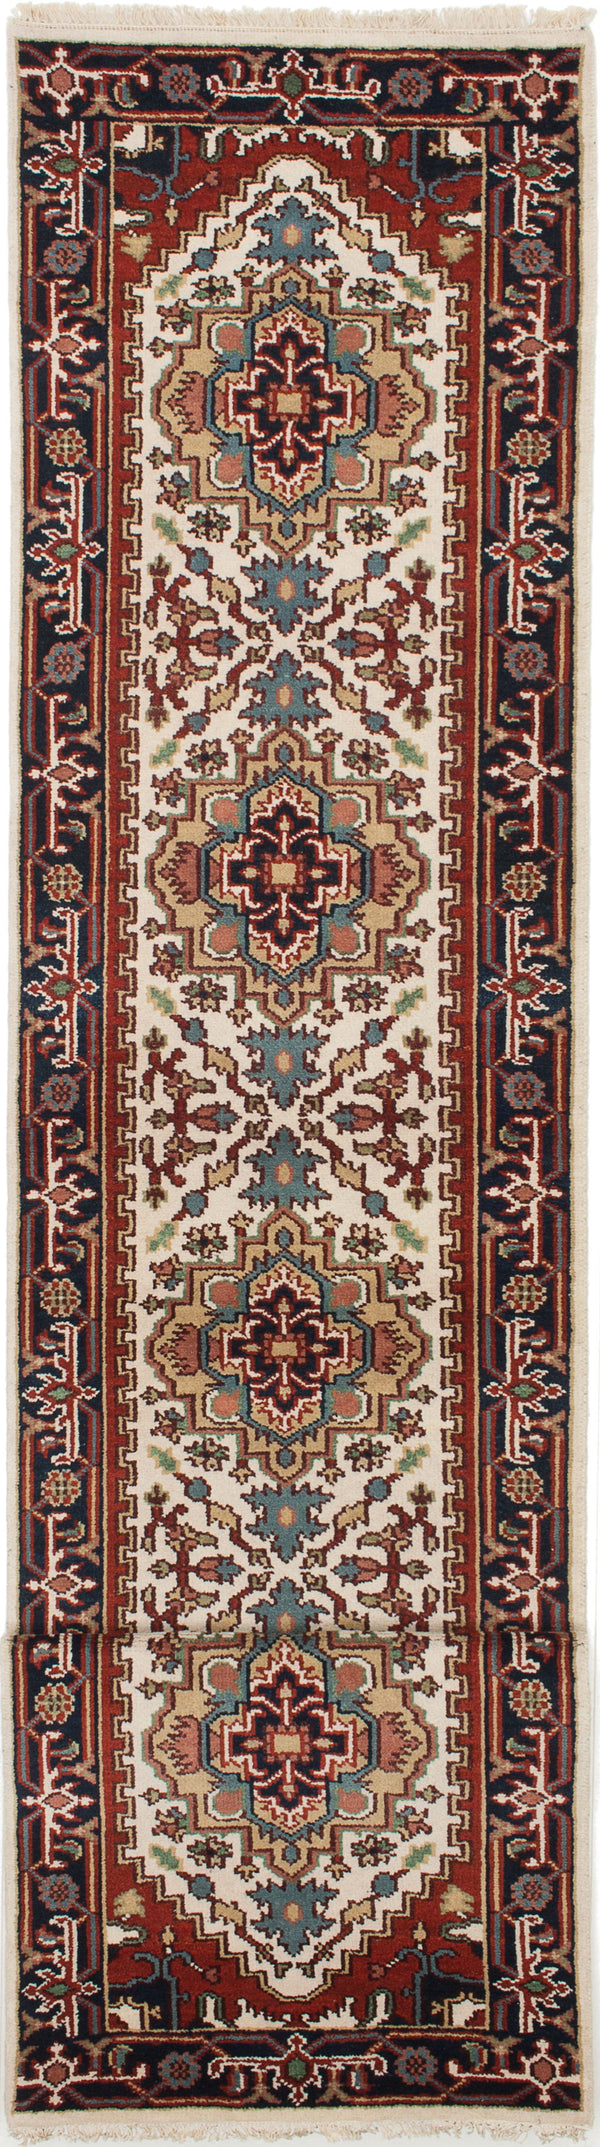 Hand-knotted Indian Floral  Traditional Serapi-Heritage Runner rug  Cream 2.6 x 14.1